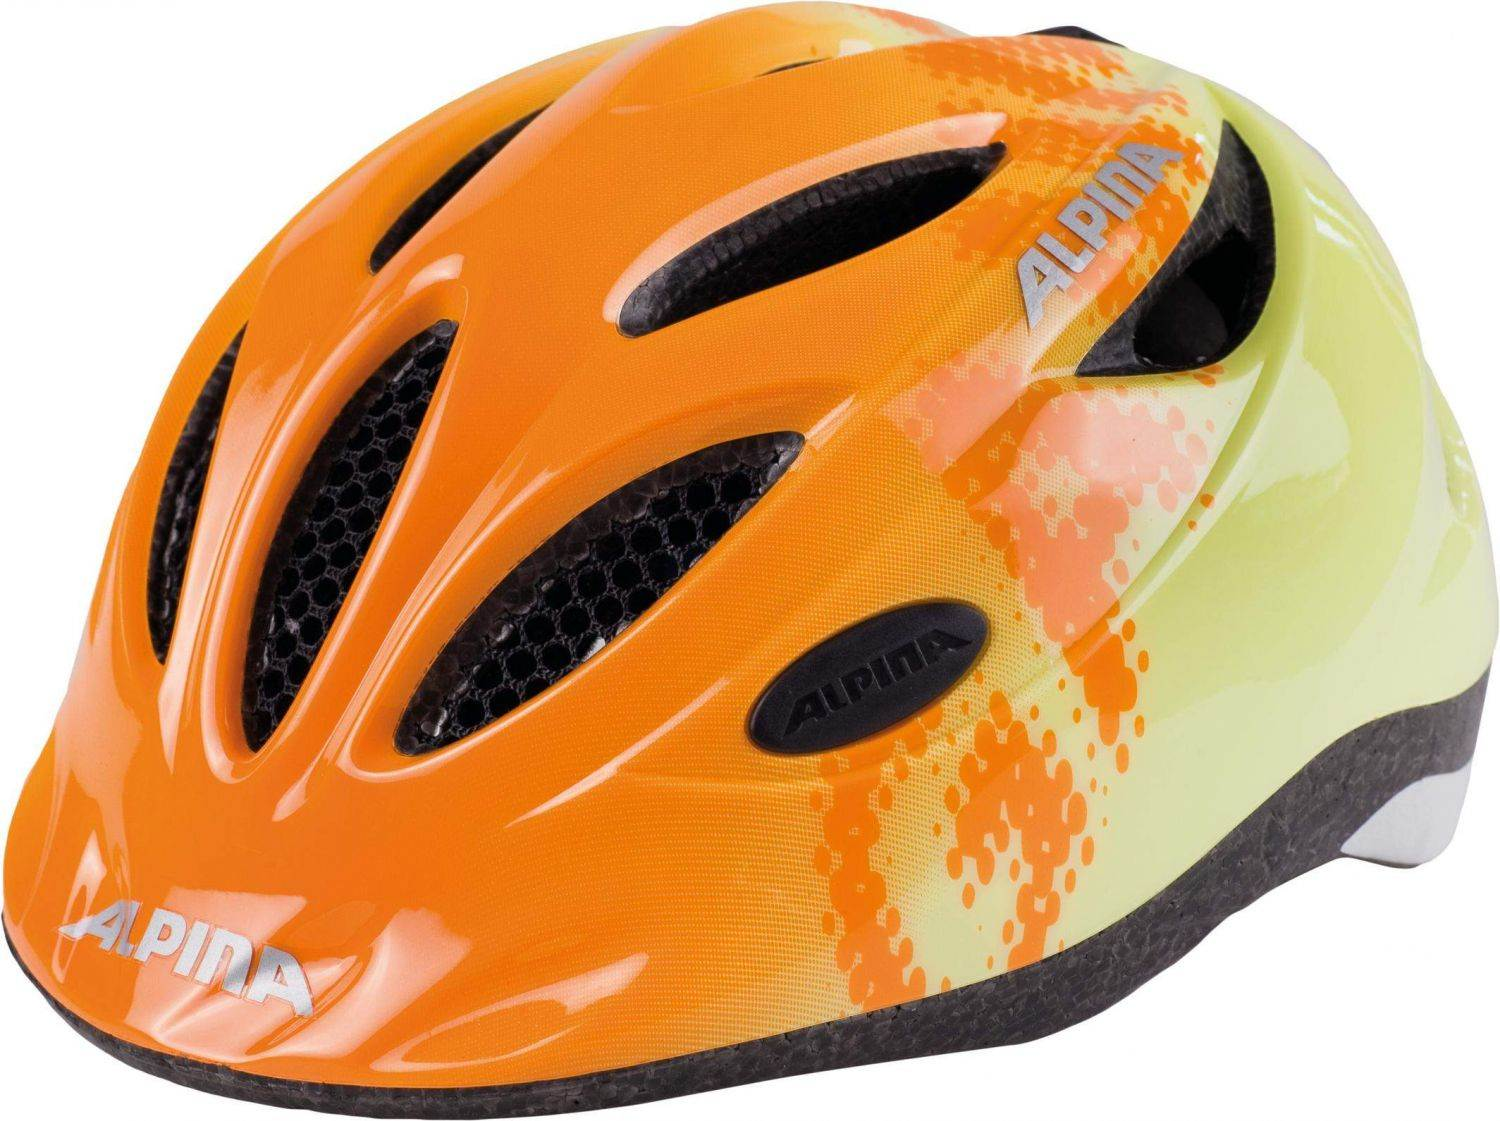 alpina-gamma-2-0-kinder-fahrradhelm-gr-ouml-szlig-e-46-51-cm-40-orange-yellow-